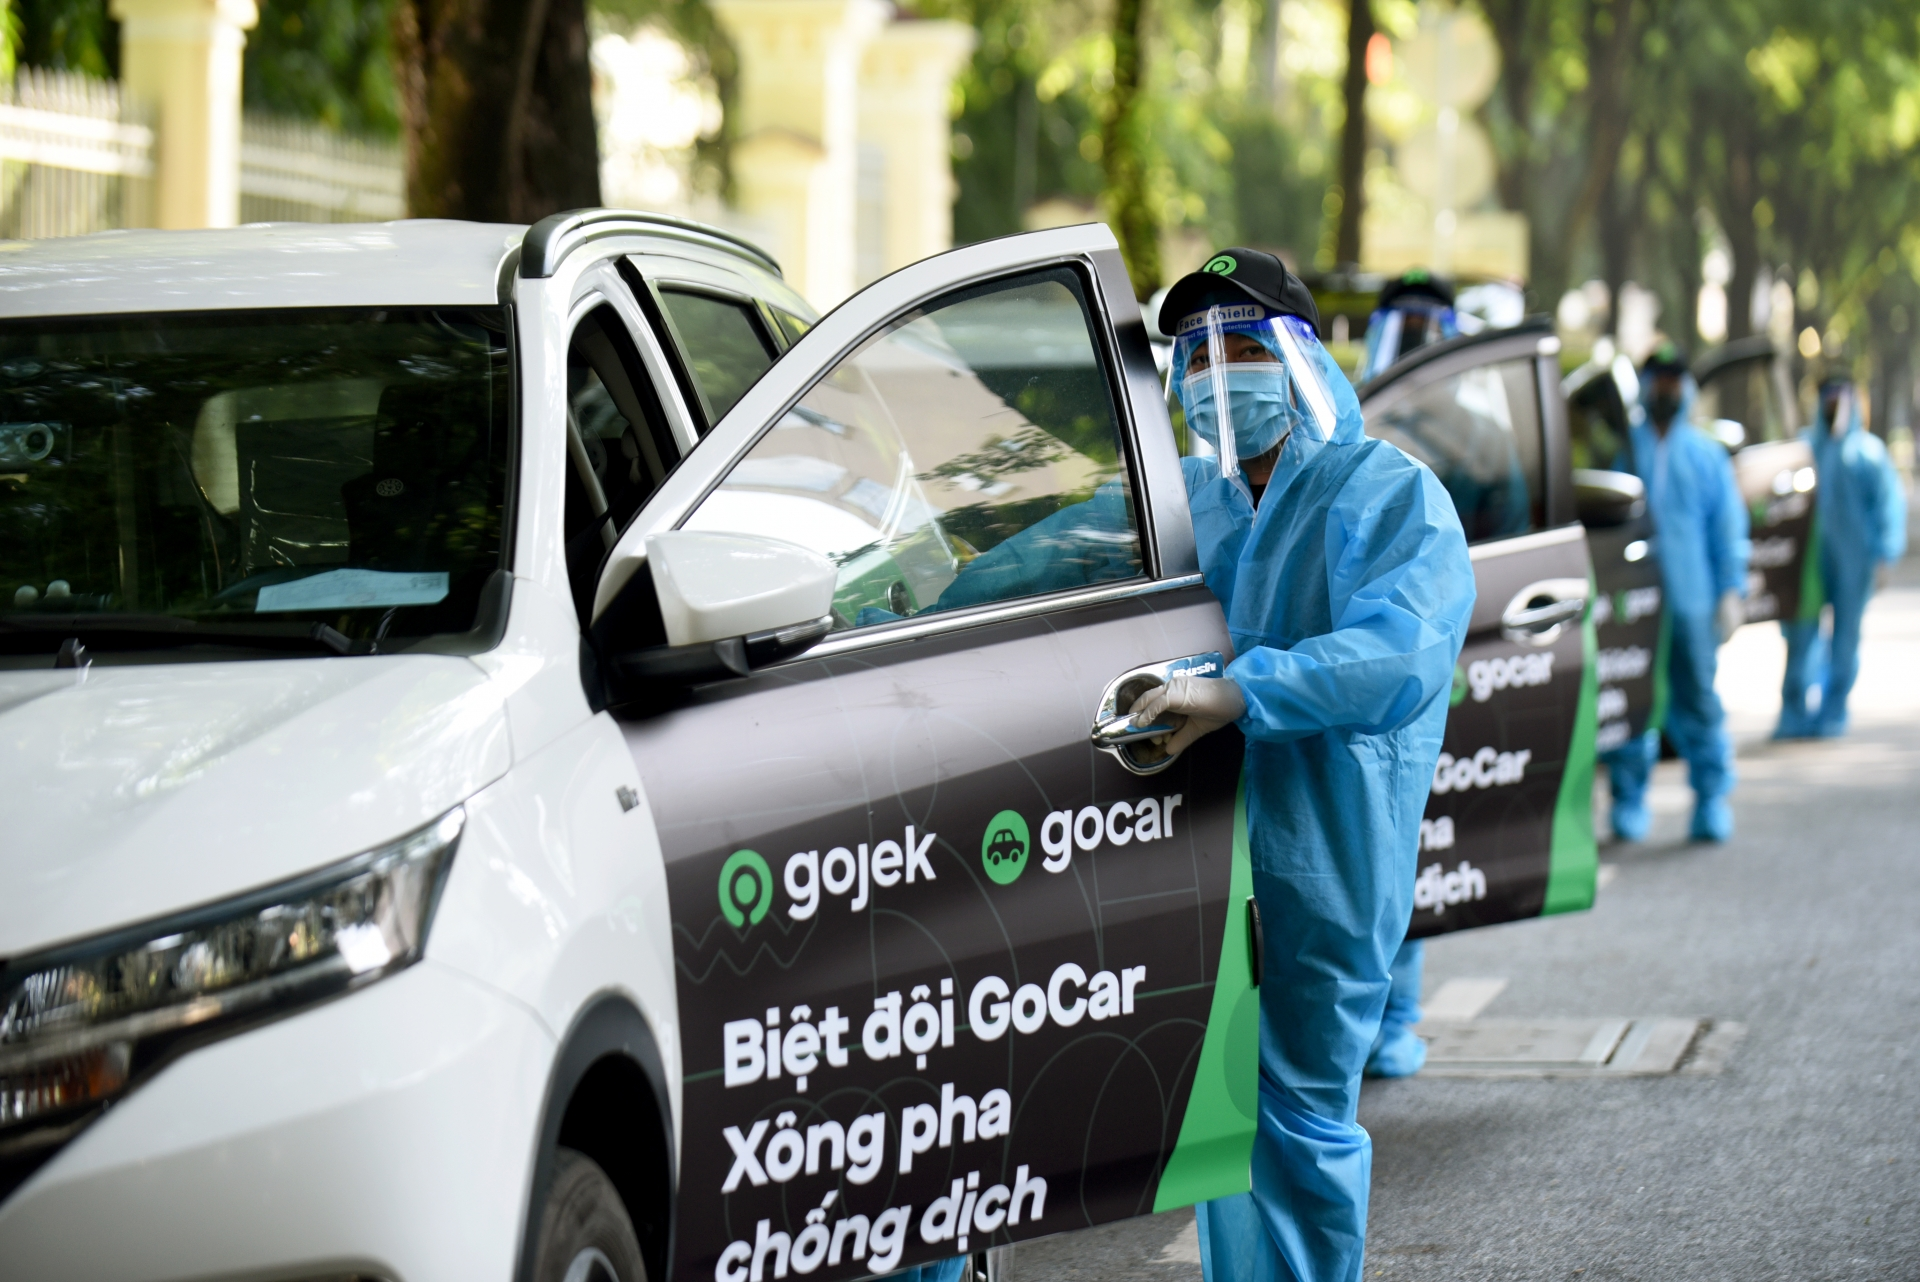 Gojek launches four-wheel ride-hailing service in Ho Chi Minh City under lockdown